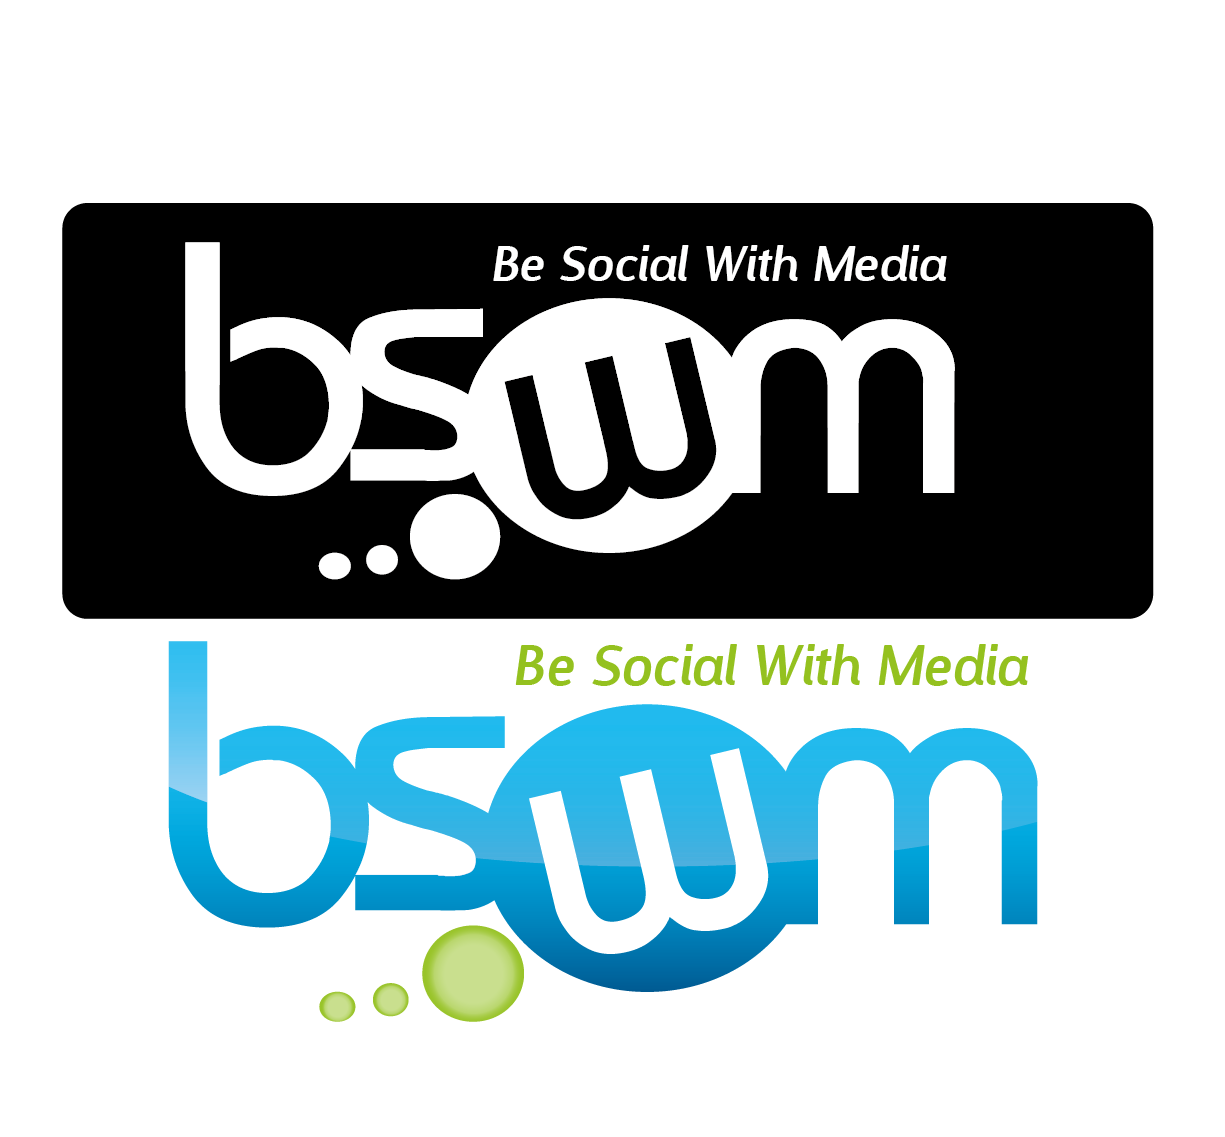 Logo Design by 354studio - Entry No. 68 in the Logo Design Contest Imaginative Logo Design for Be Social With Media.